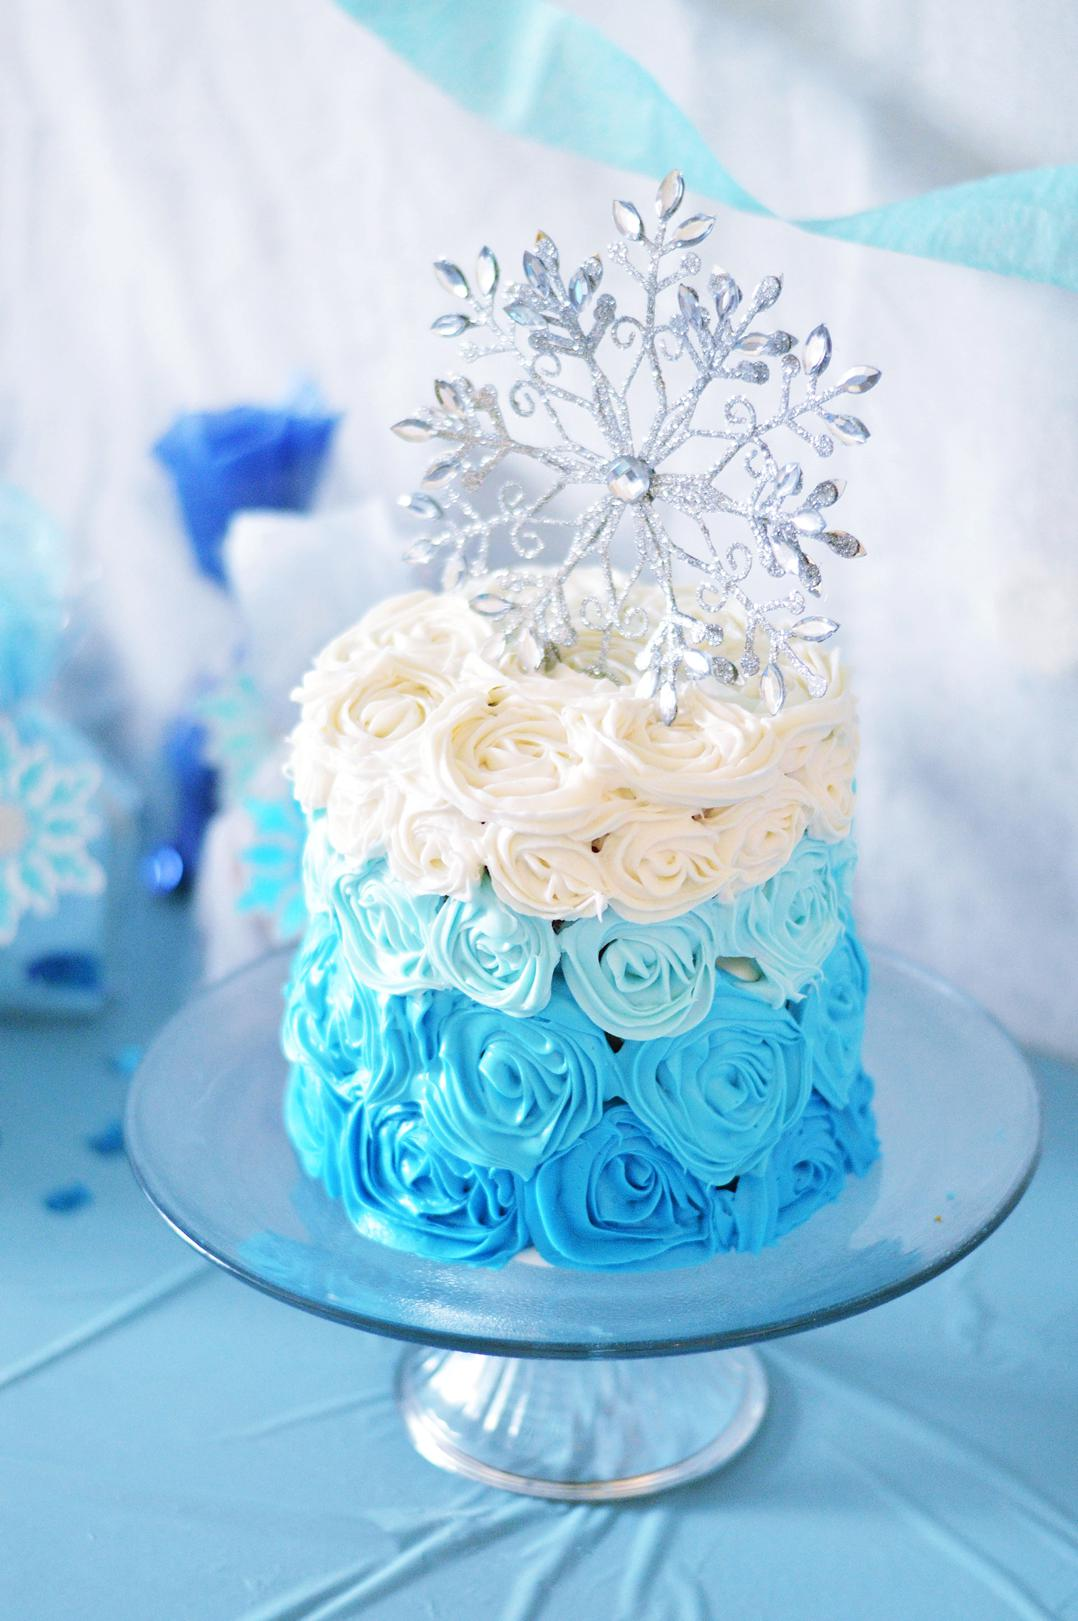 How To Make Frozen Colored Cake